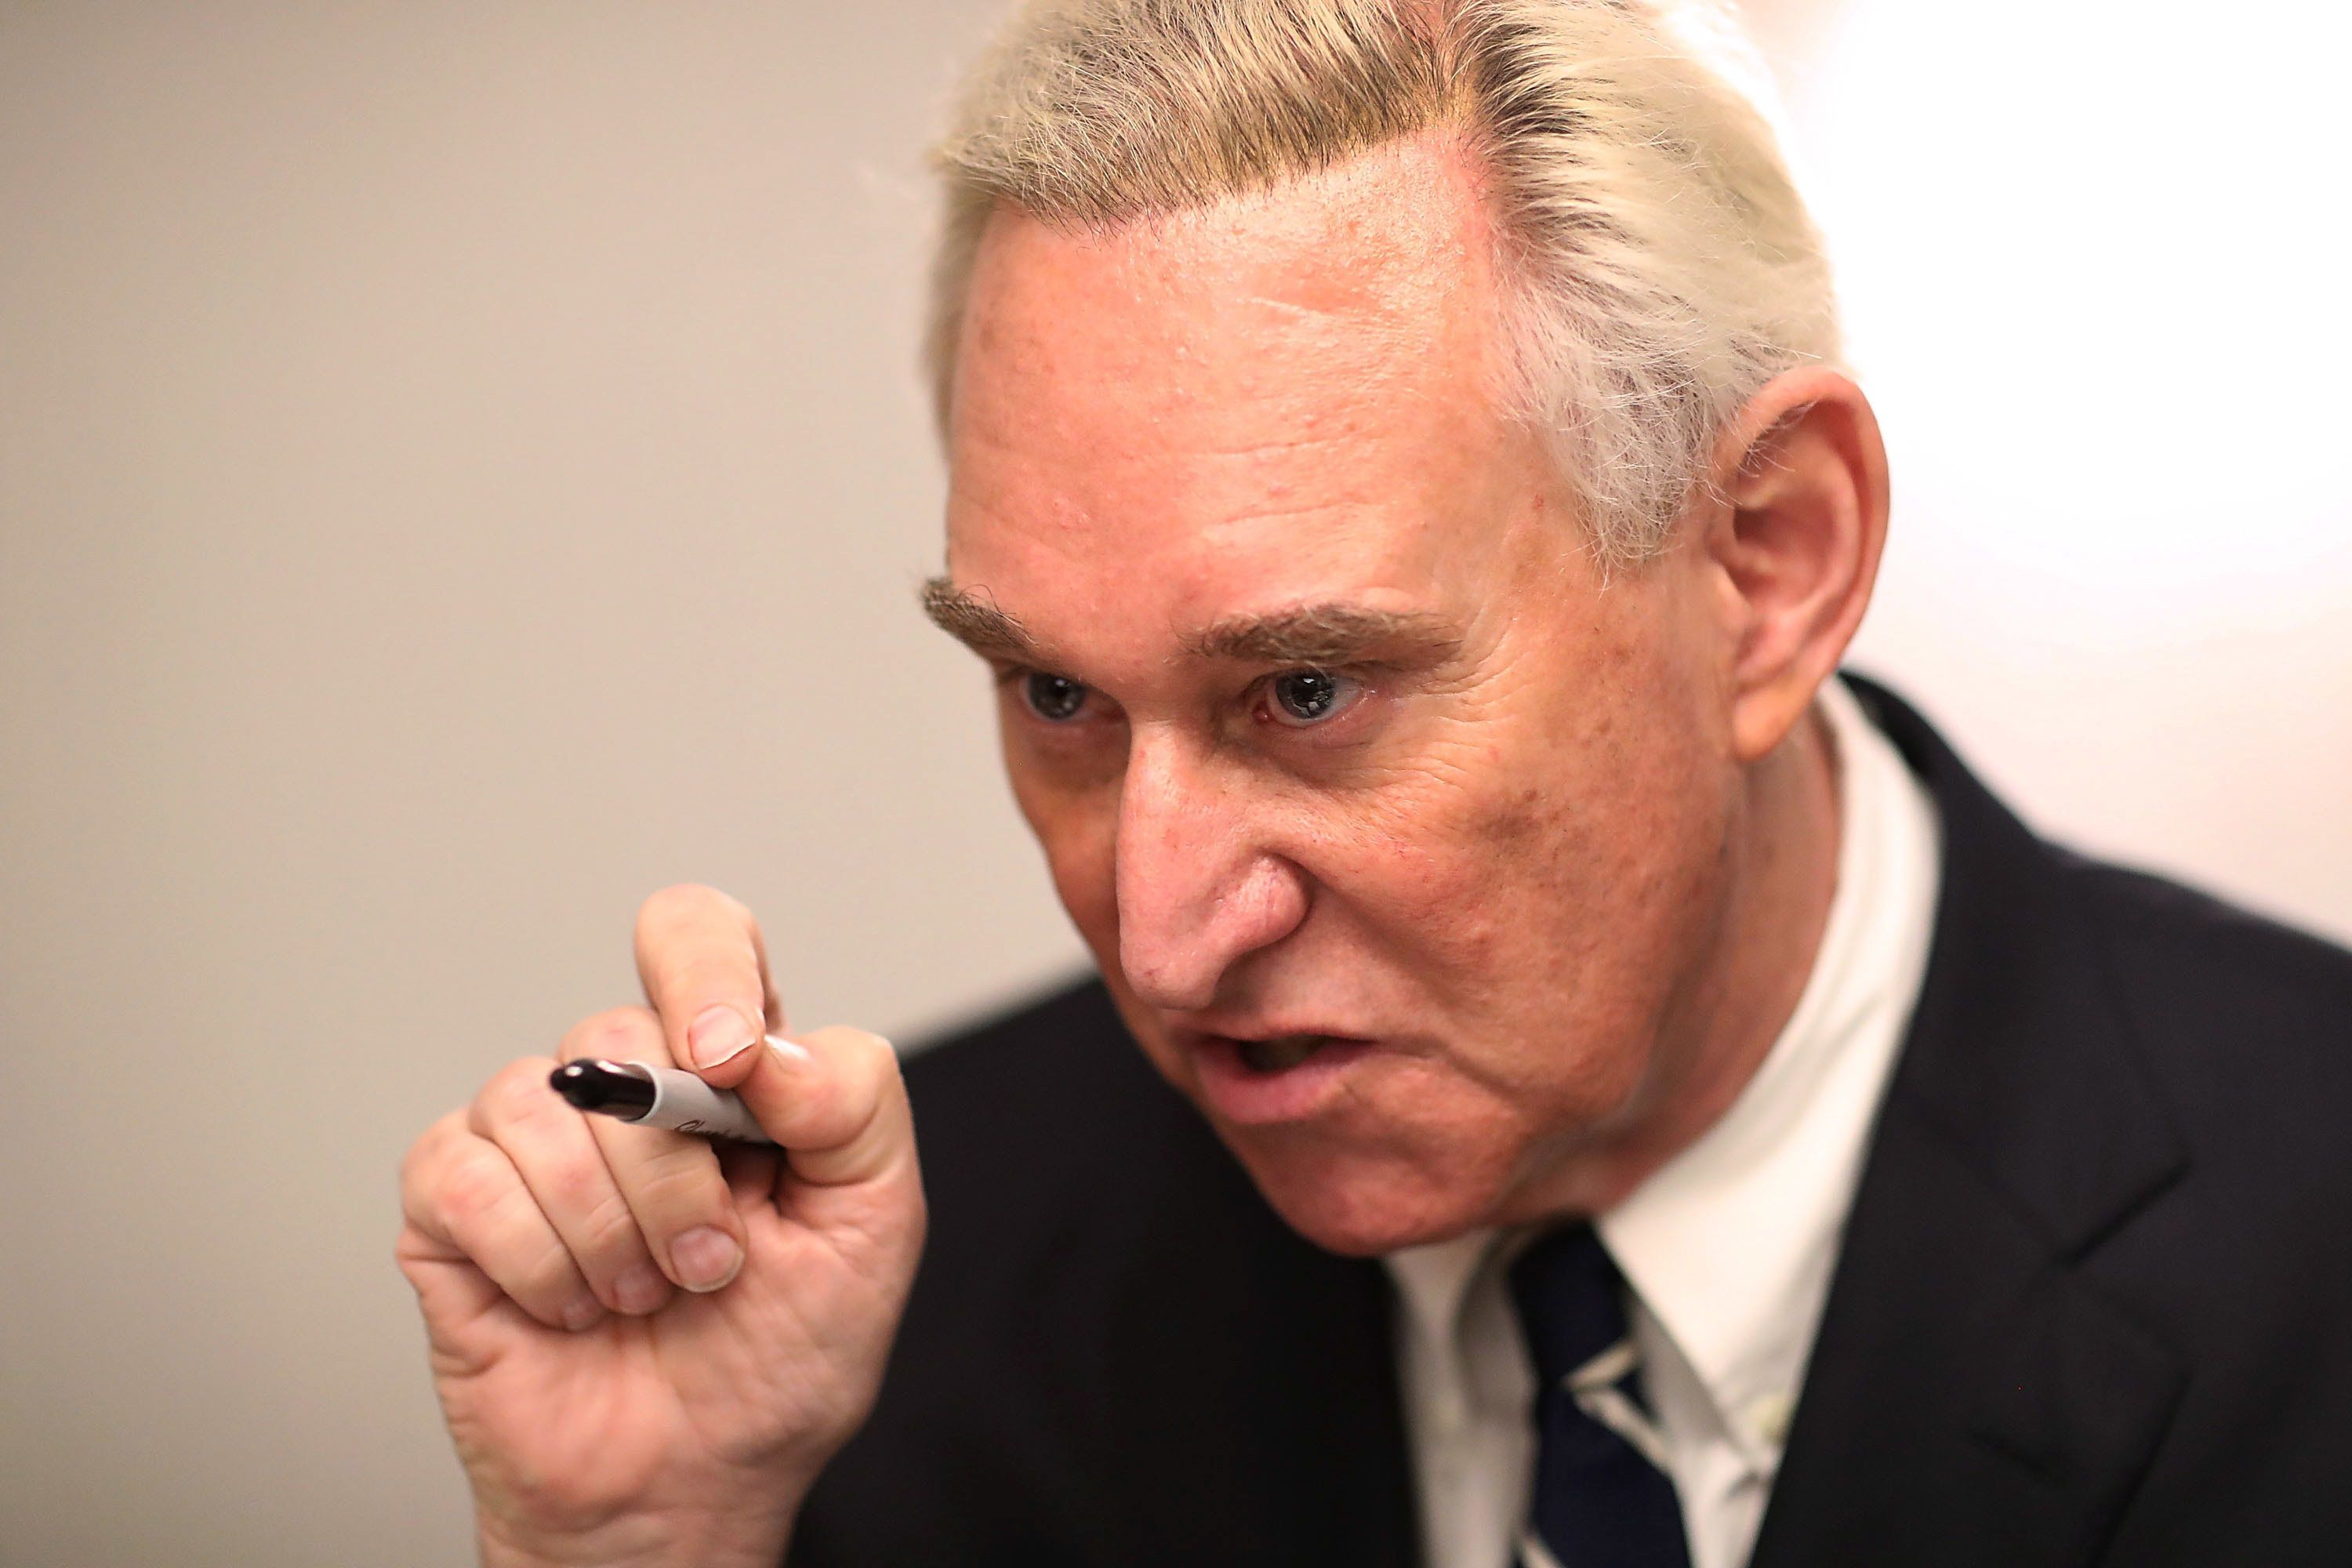 BOCA RATON, FL - MARCH 21:  Roger Stone, a longtime political adviser and friend to President Donald Trump, signs copies of his book 'The Making of the President 2016' at the Boca Raton Marriott on March 21, 2017 in Boca Raton, Florida.  The book delves into the 2016 presidential run by Donald Trump.  (Photo by Joe Raedle/Getty Images)